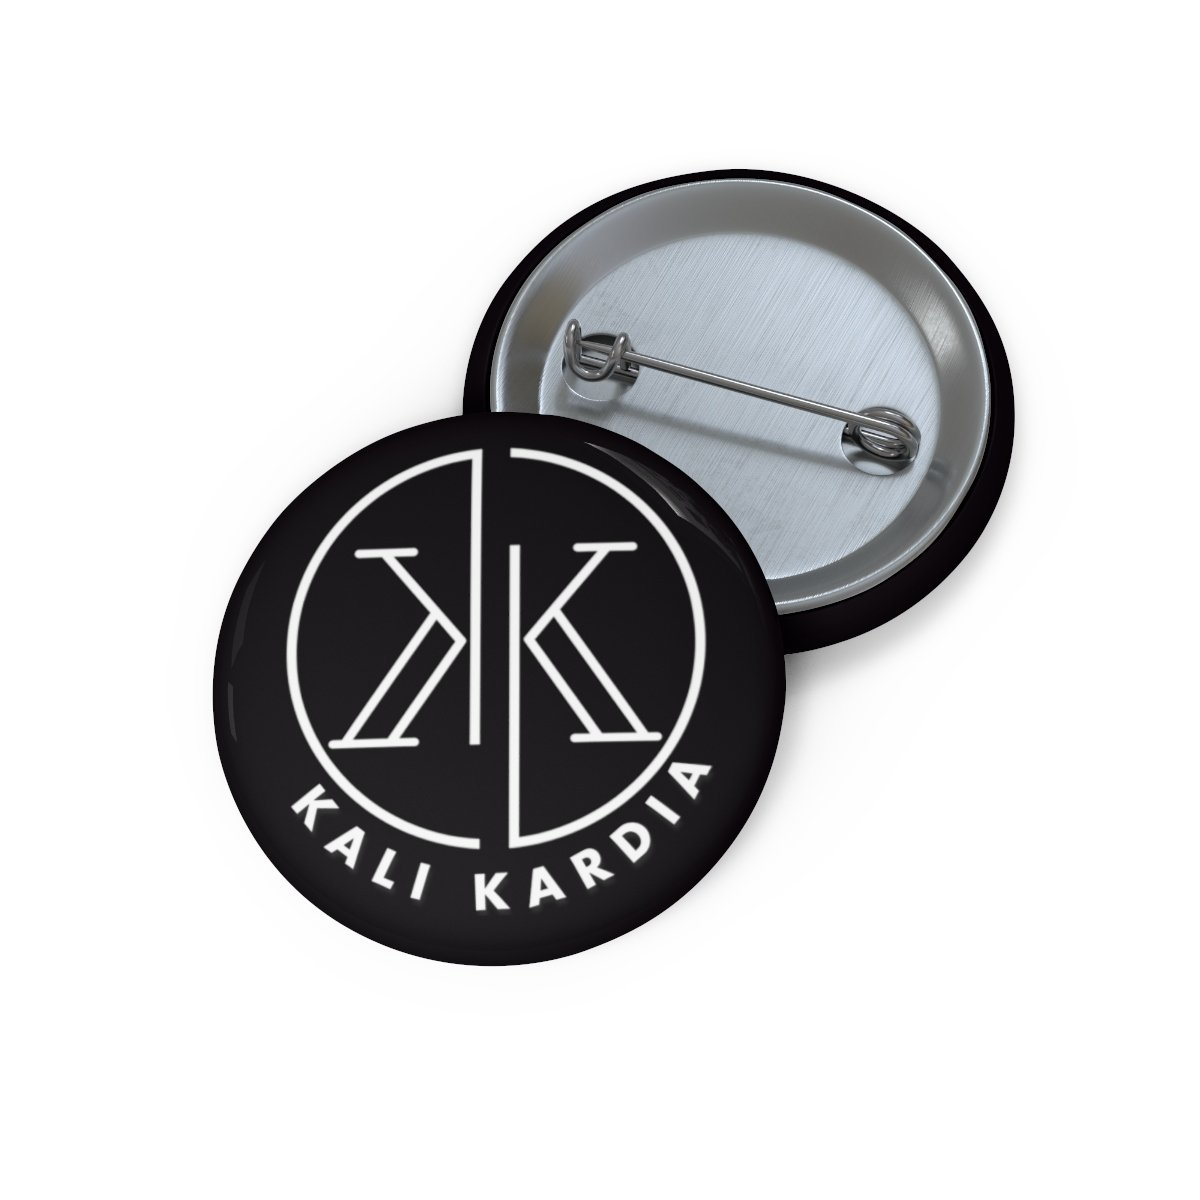 Kali K Pin Buttons